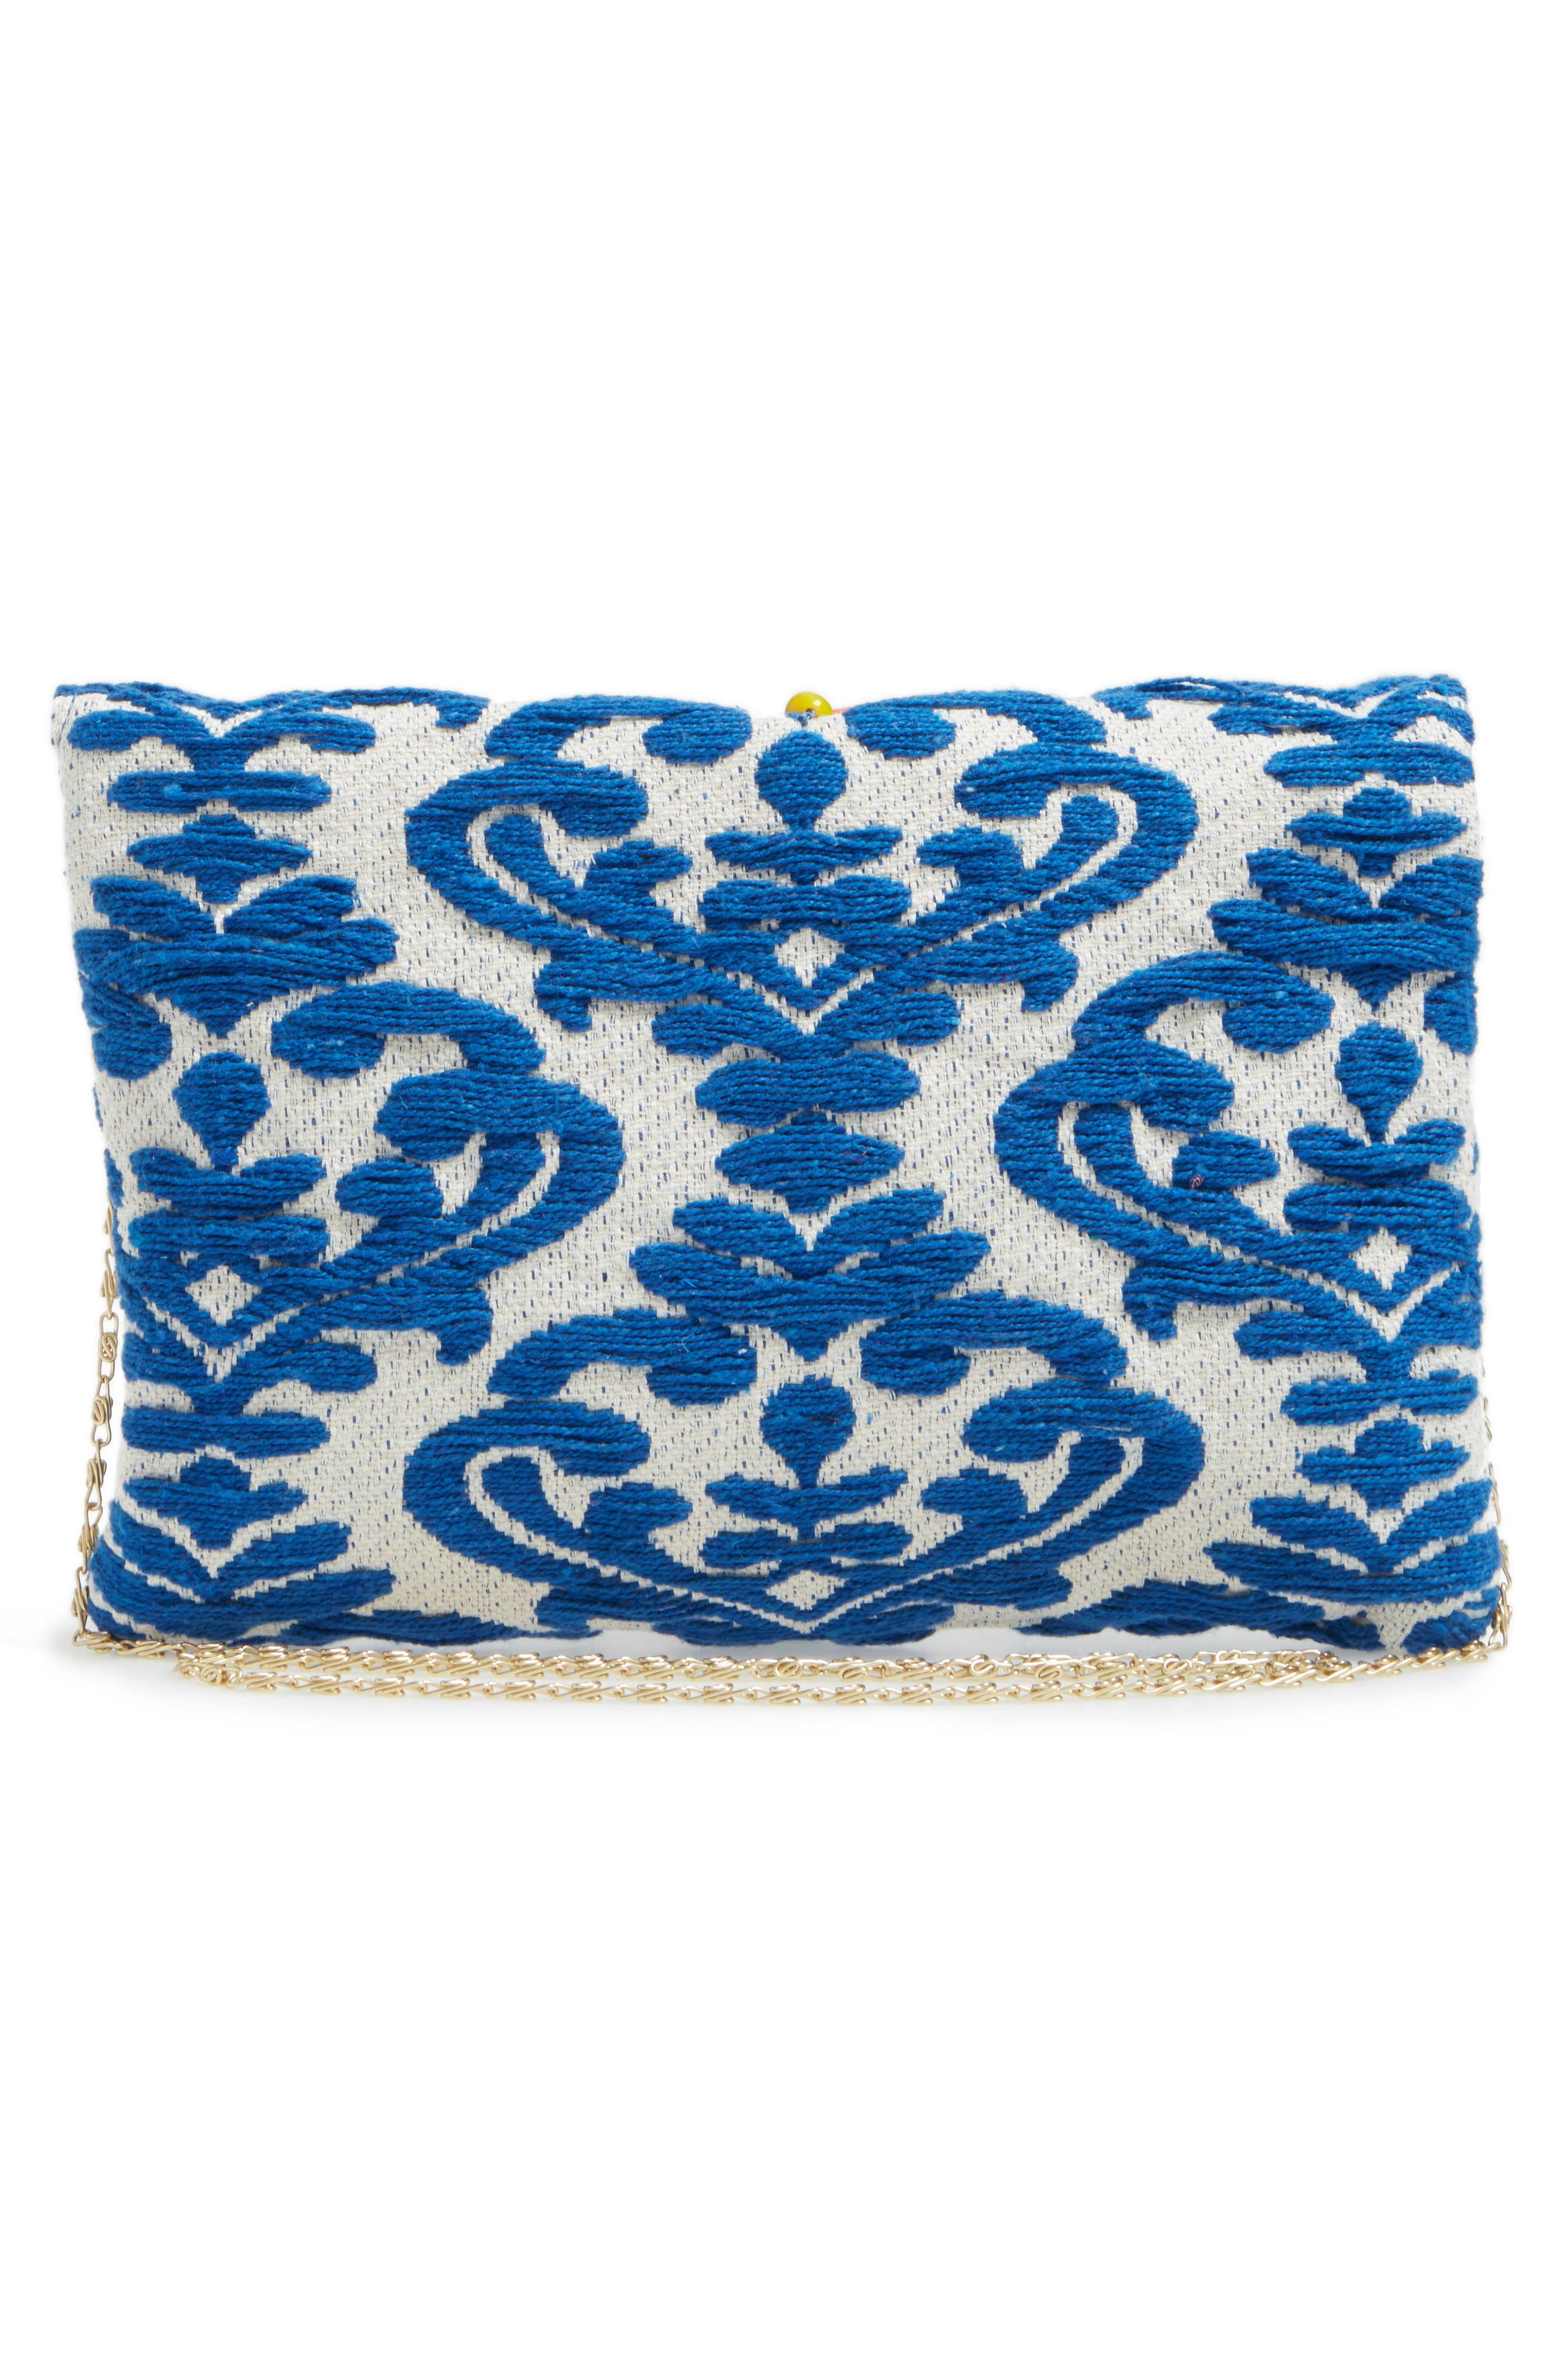 Beaded & Embroidered Clutch,                             Alternate thumbnail 3, color,                             400